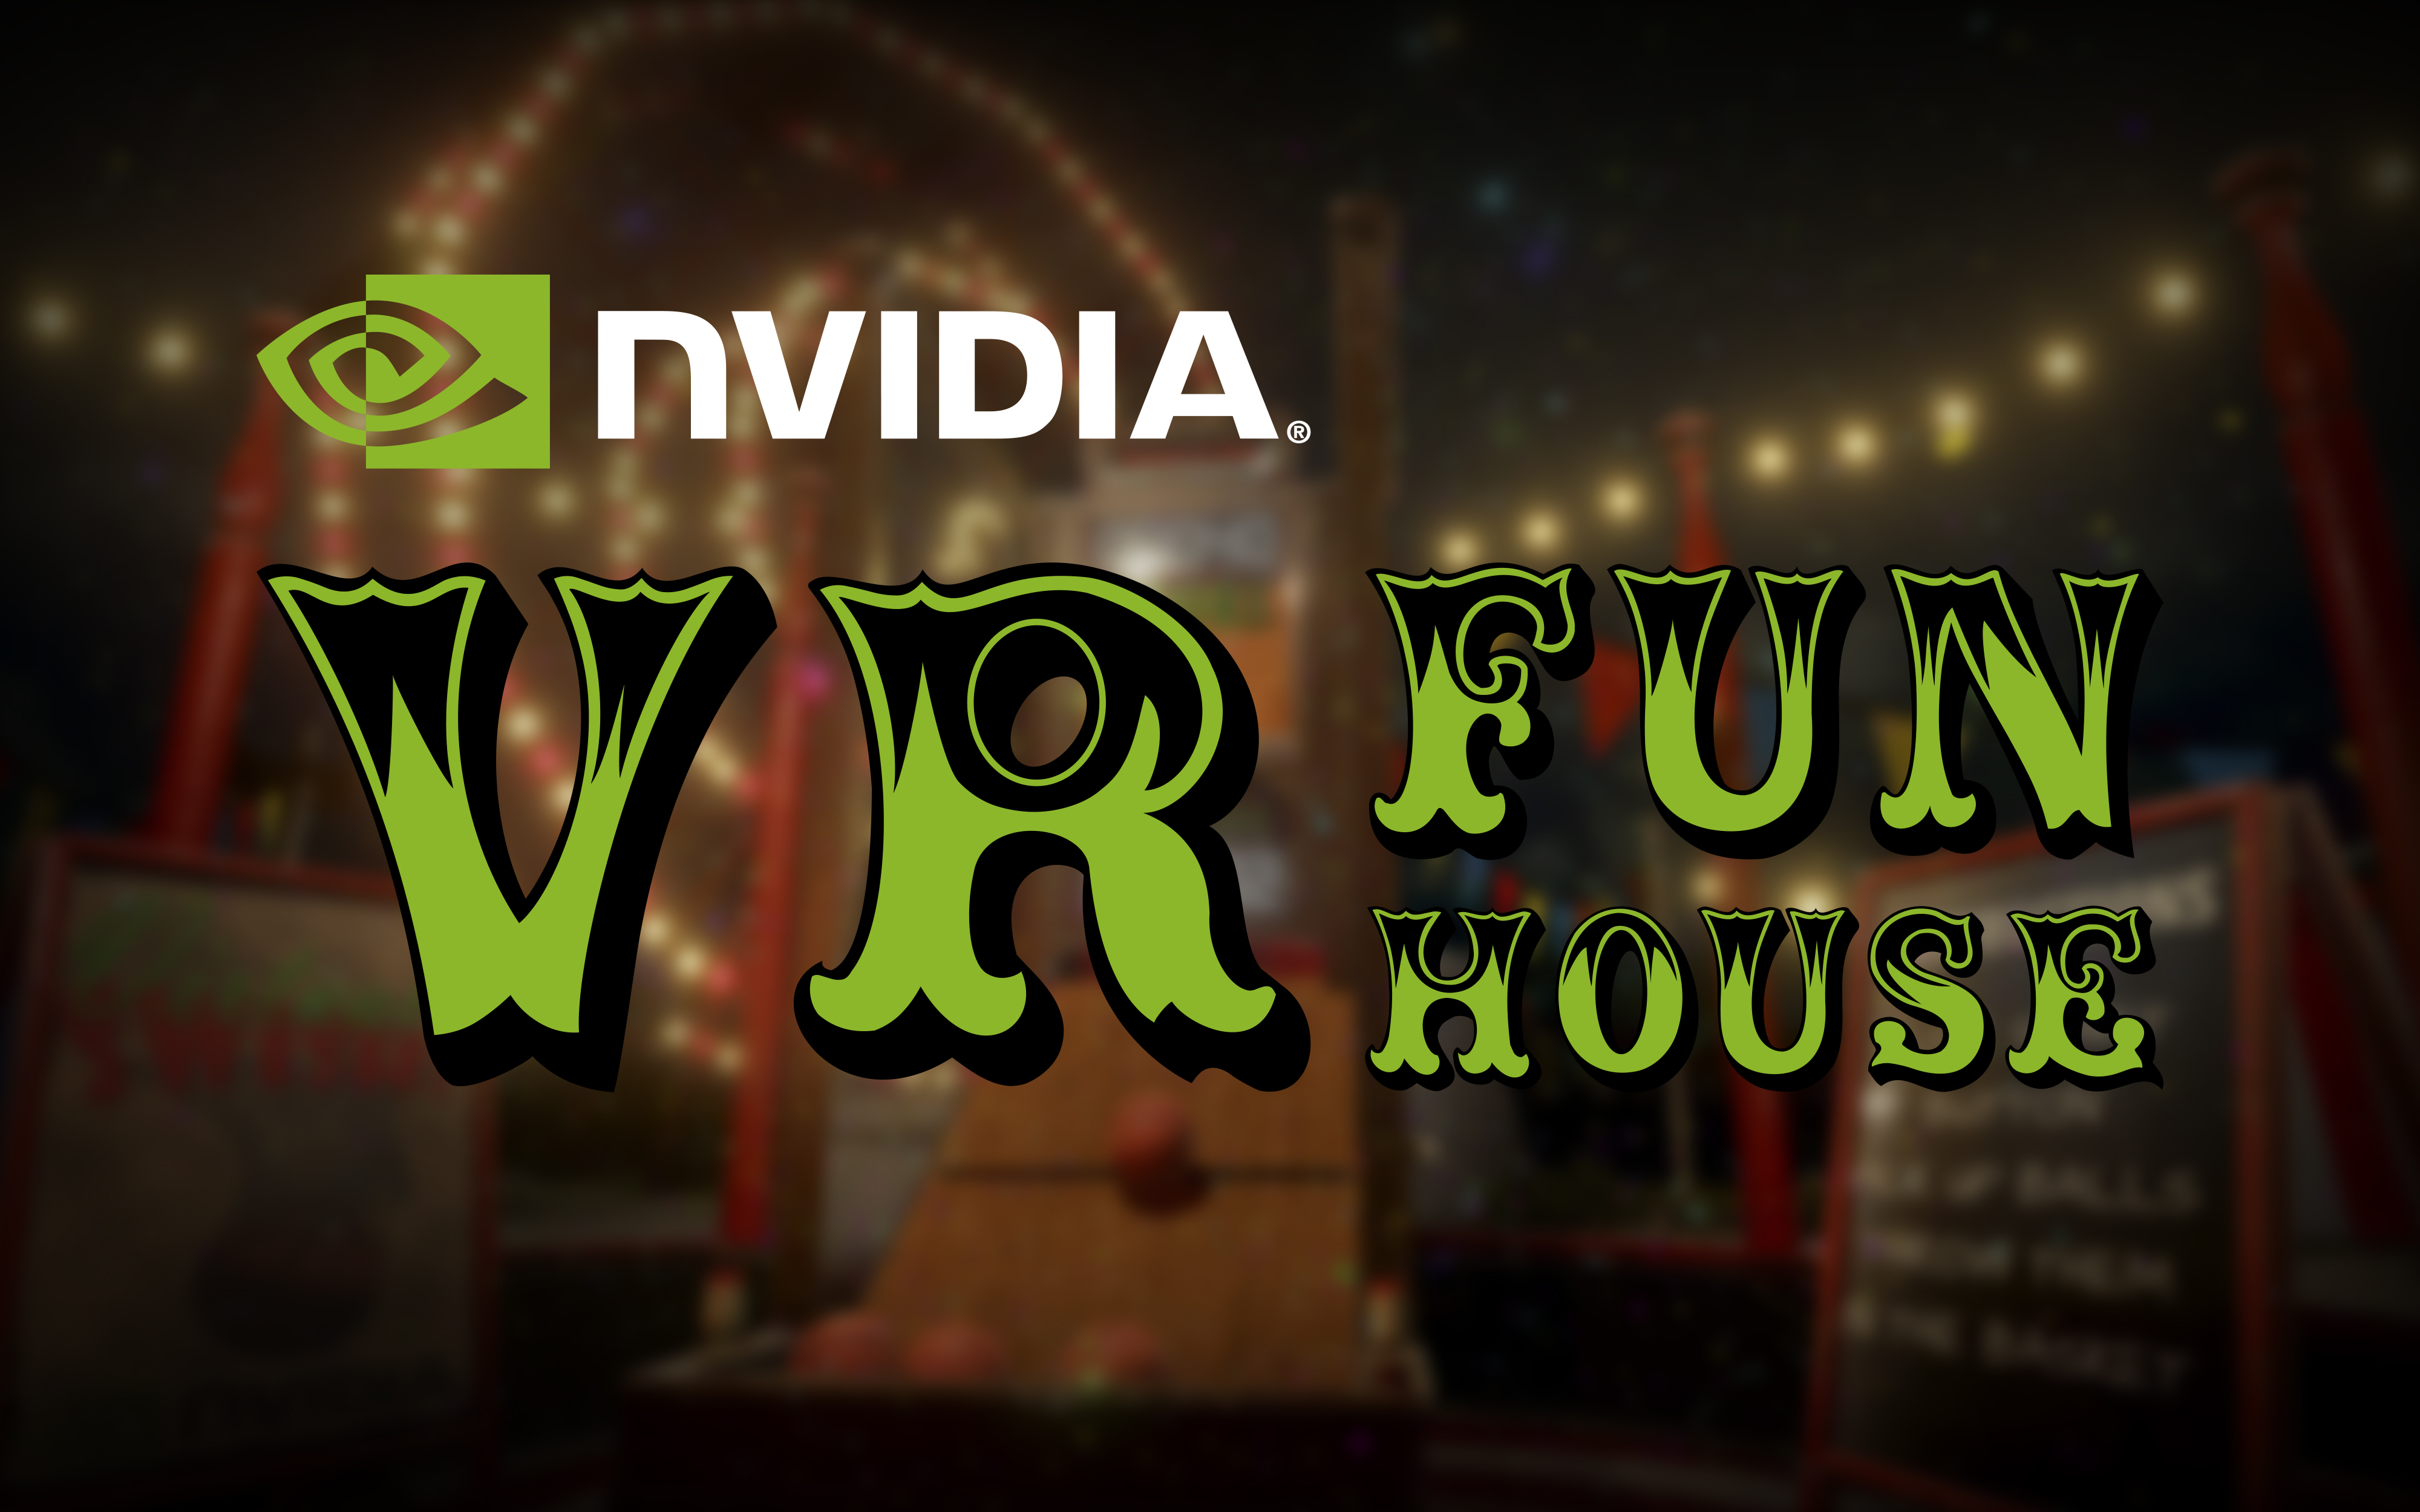 Nvidia vr funhouse released download now for free geforce for Vr house